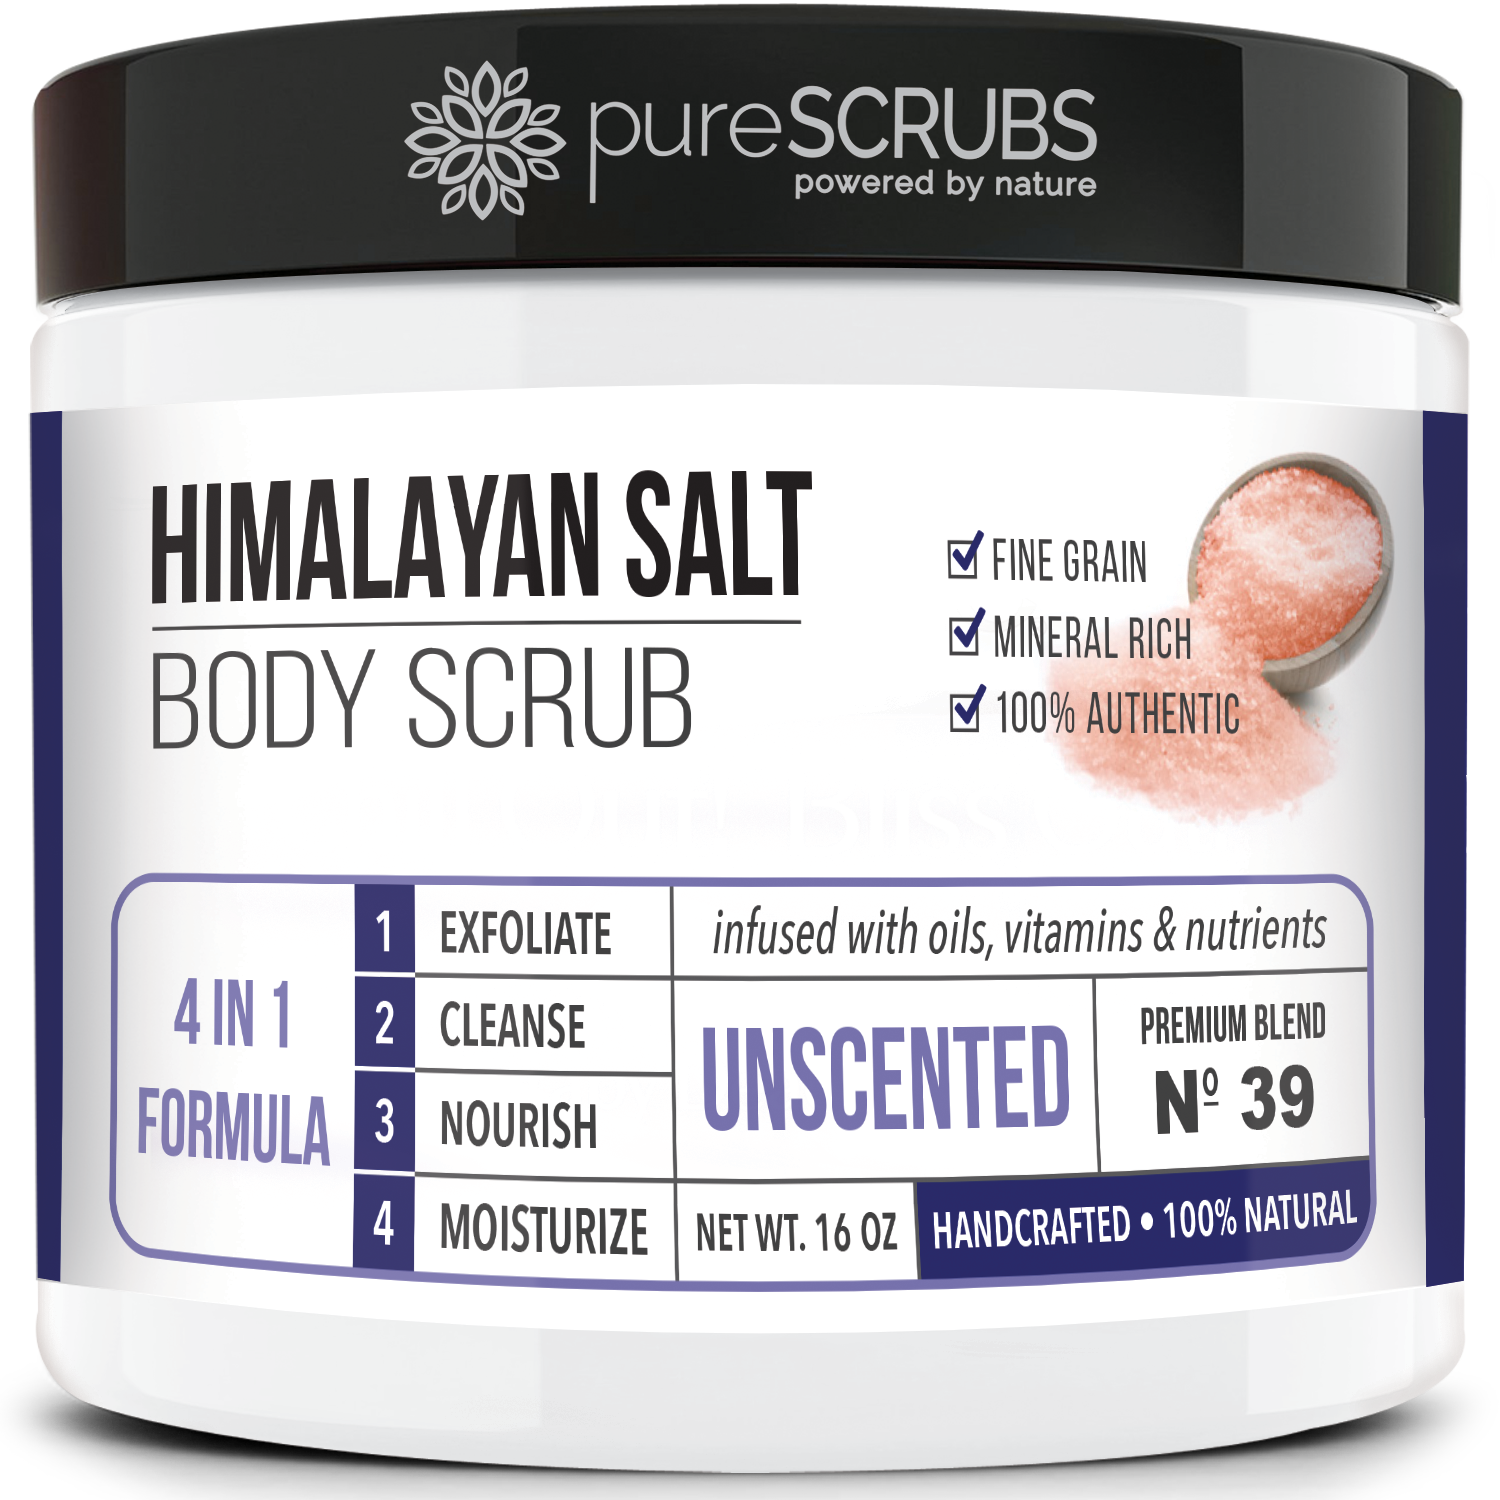 Unscented Body Scrub / Pink Himalayan Salt / Premium Blend #39